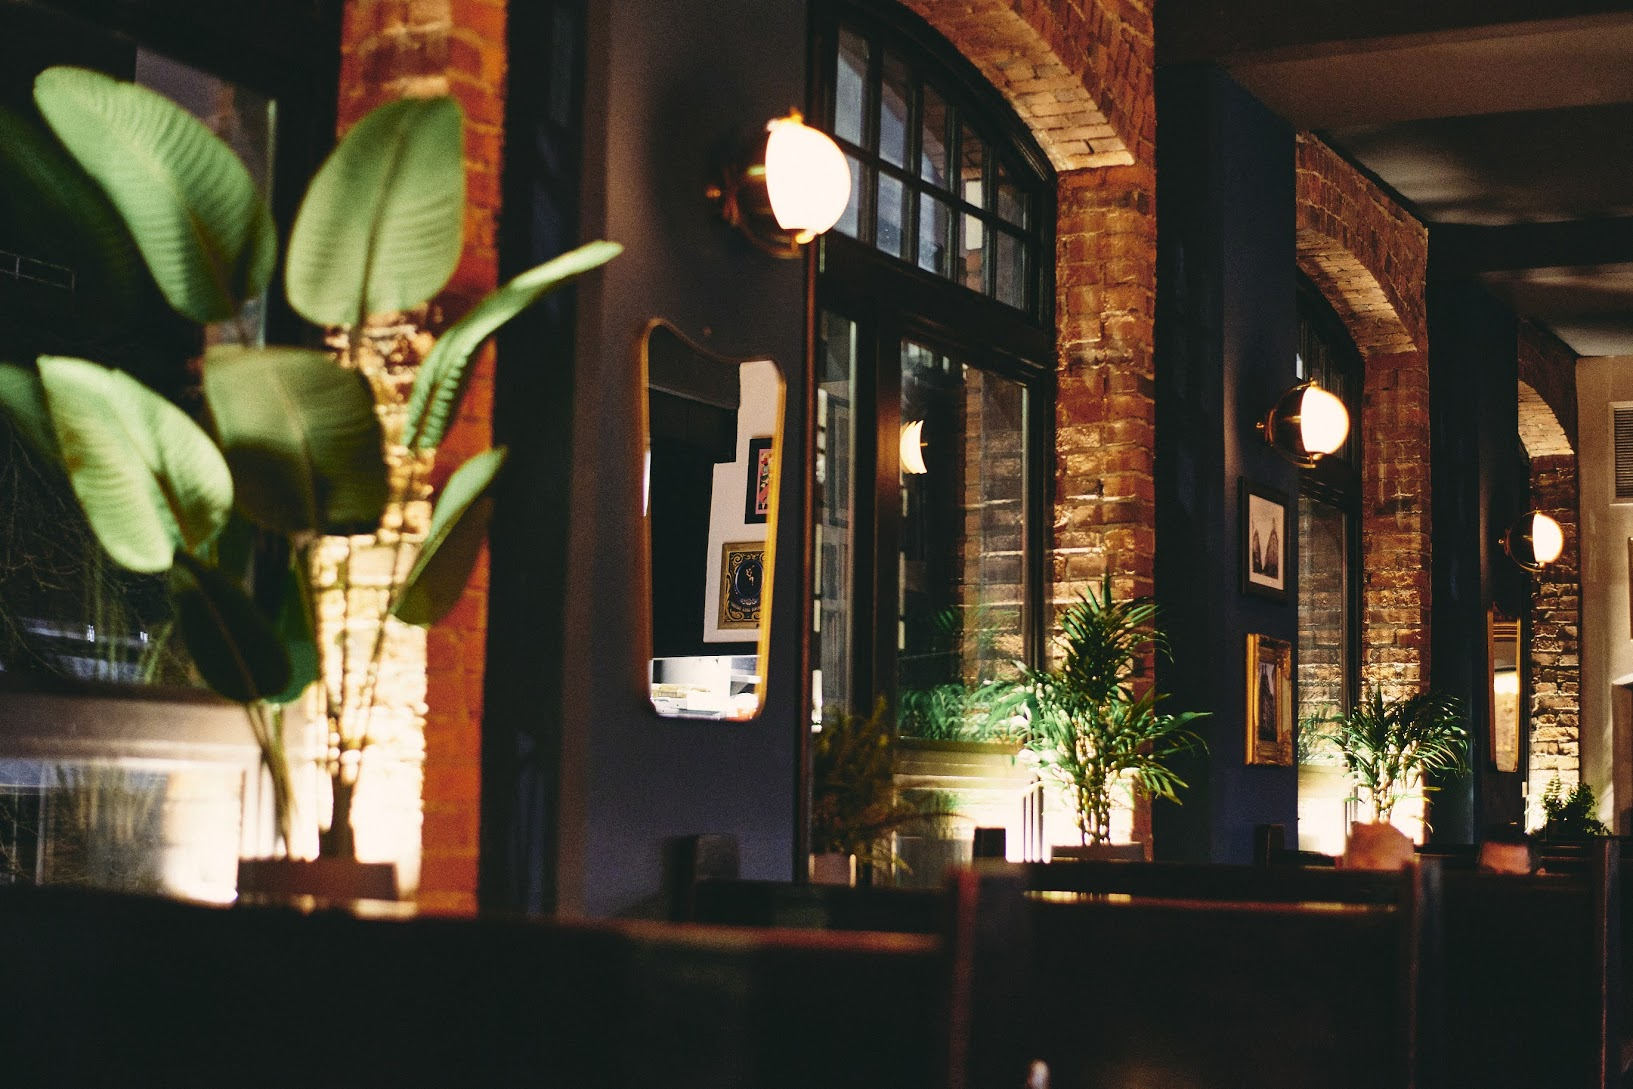 The low-lit interior of the former Queen City Grill, now BOCA Restobar & Grill, with a plant displaying large green fronds in the foreground and tall windows lining the walls